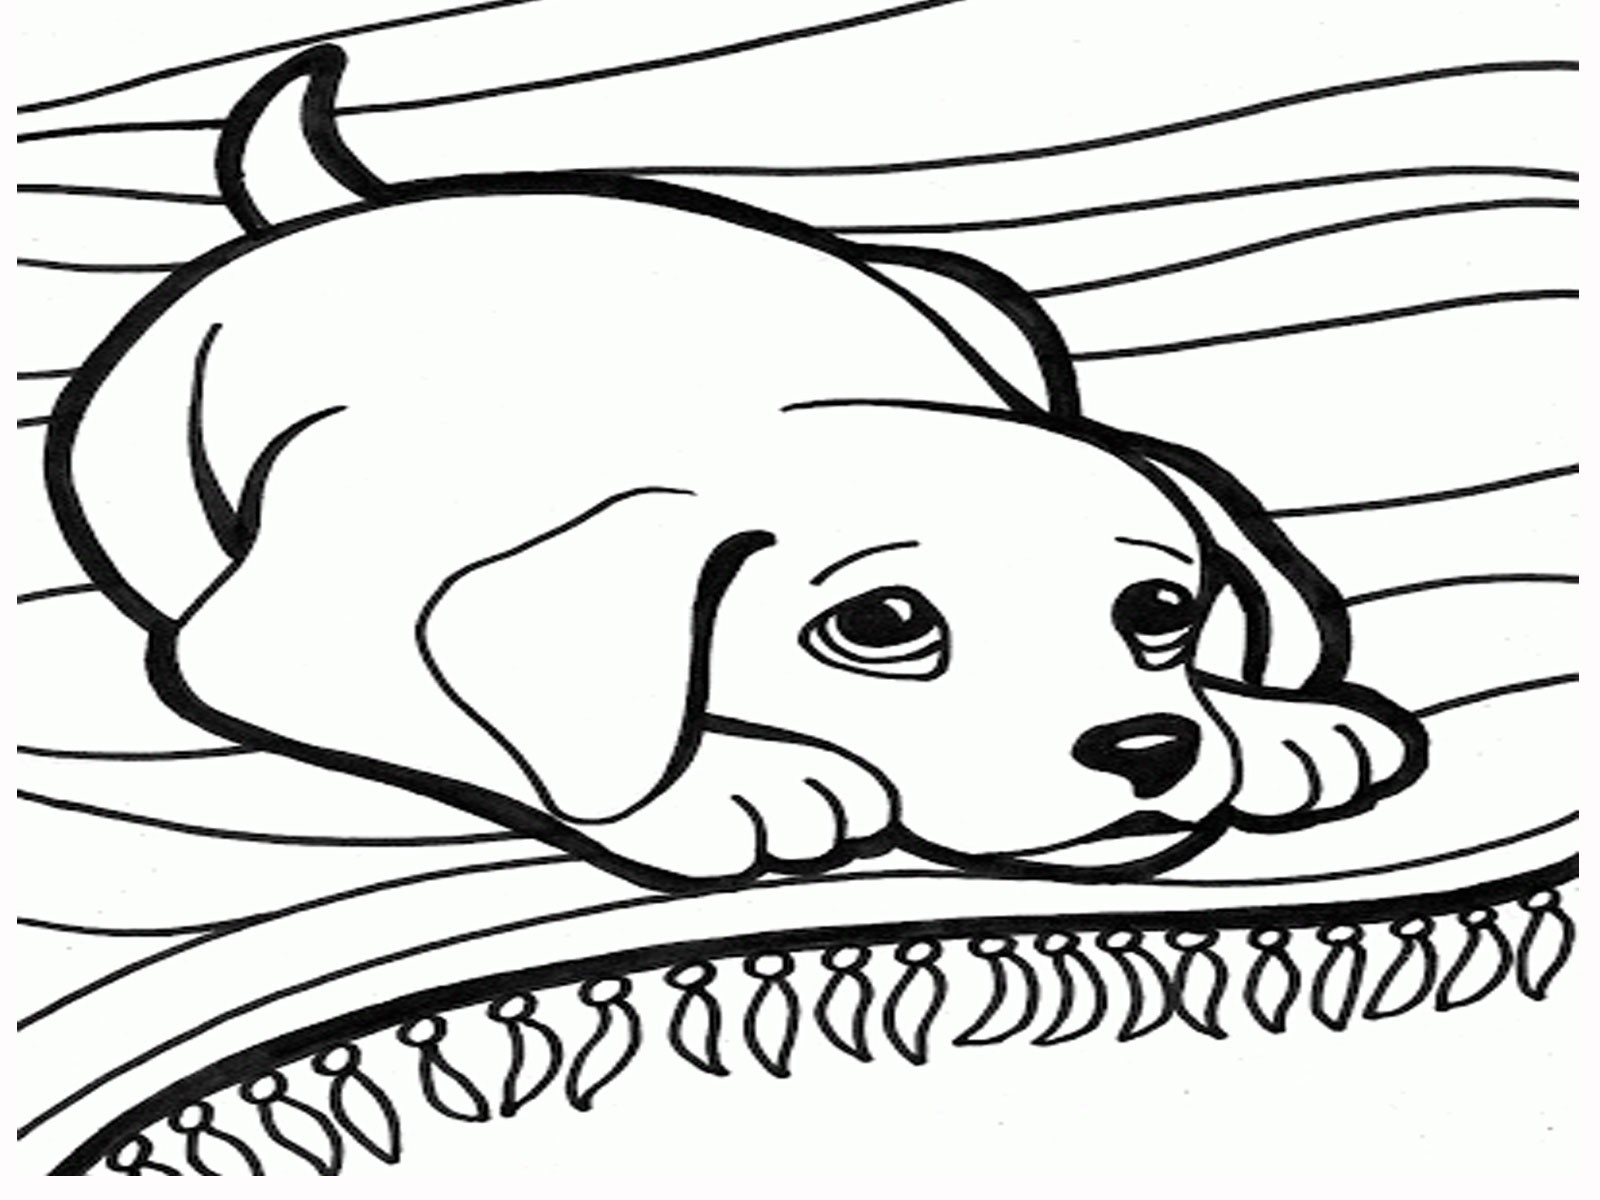 1600x1200 Dog Dish Coloring Page Free Draw To Color